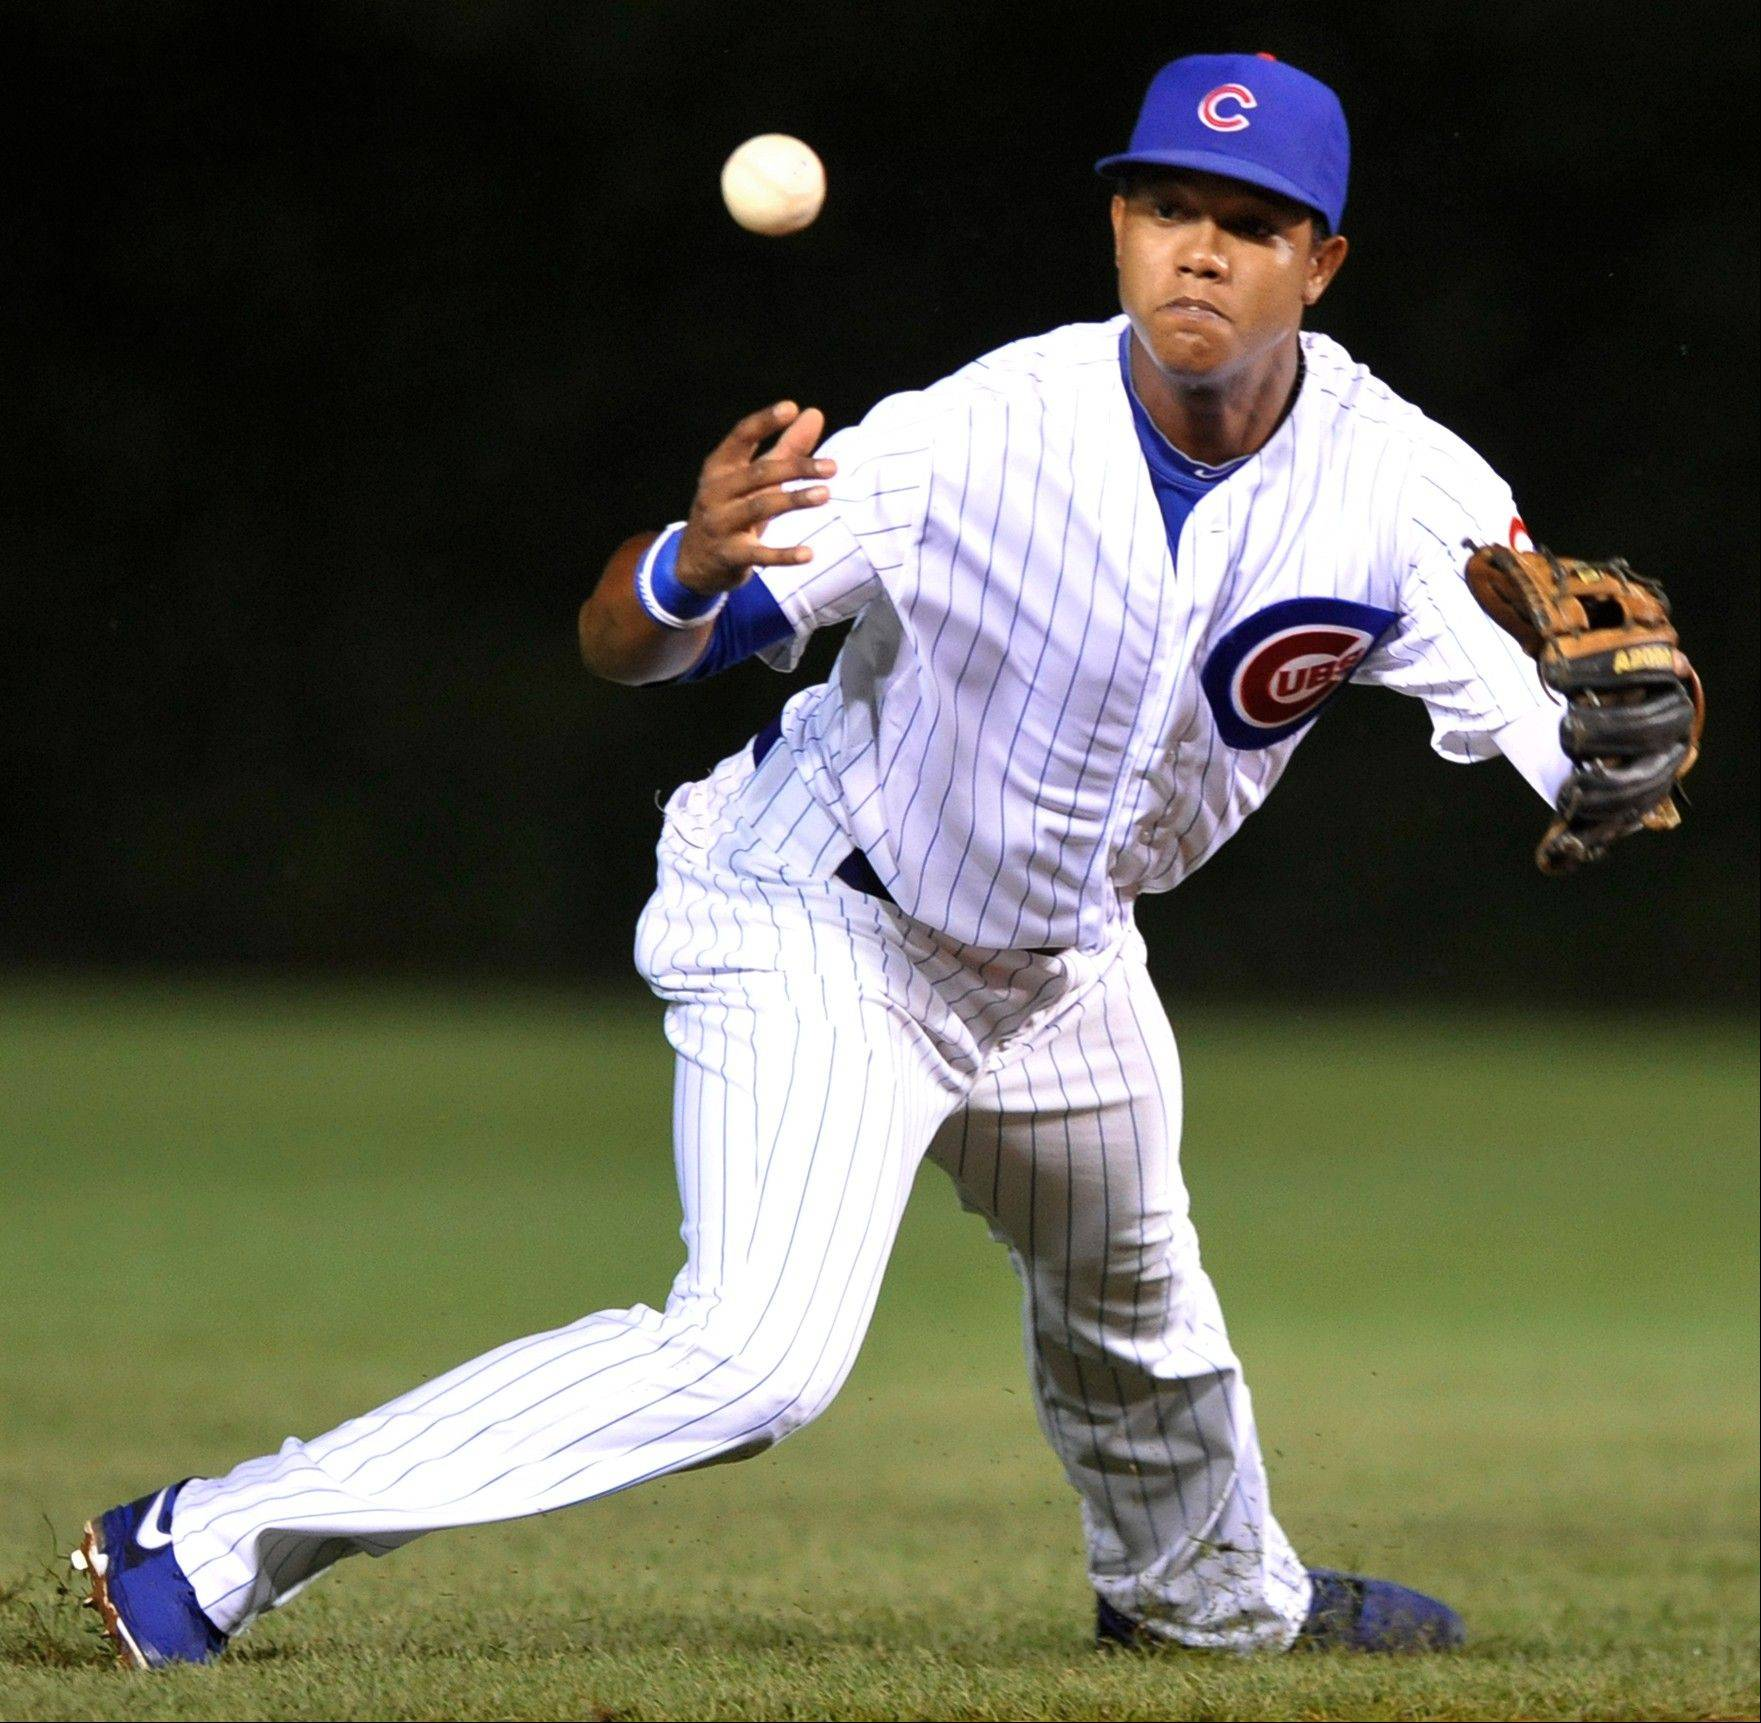 Starlin Castro continues to learn some lessons the hard way, but manager Dale Sveum is sticking with his young shortstop.